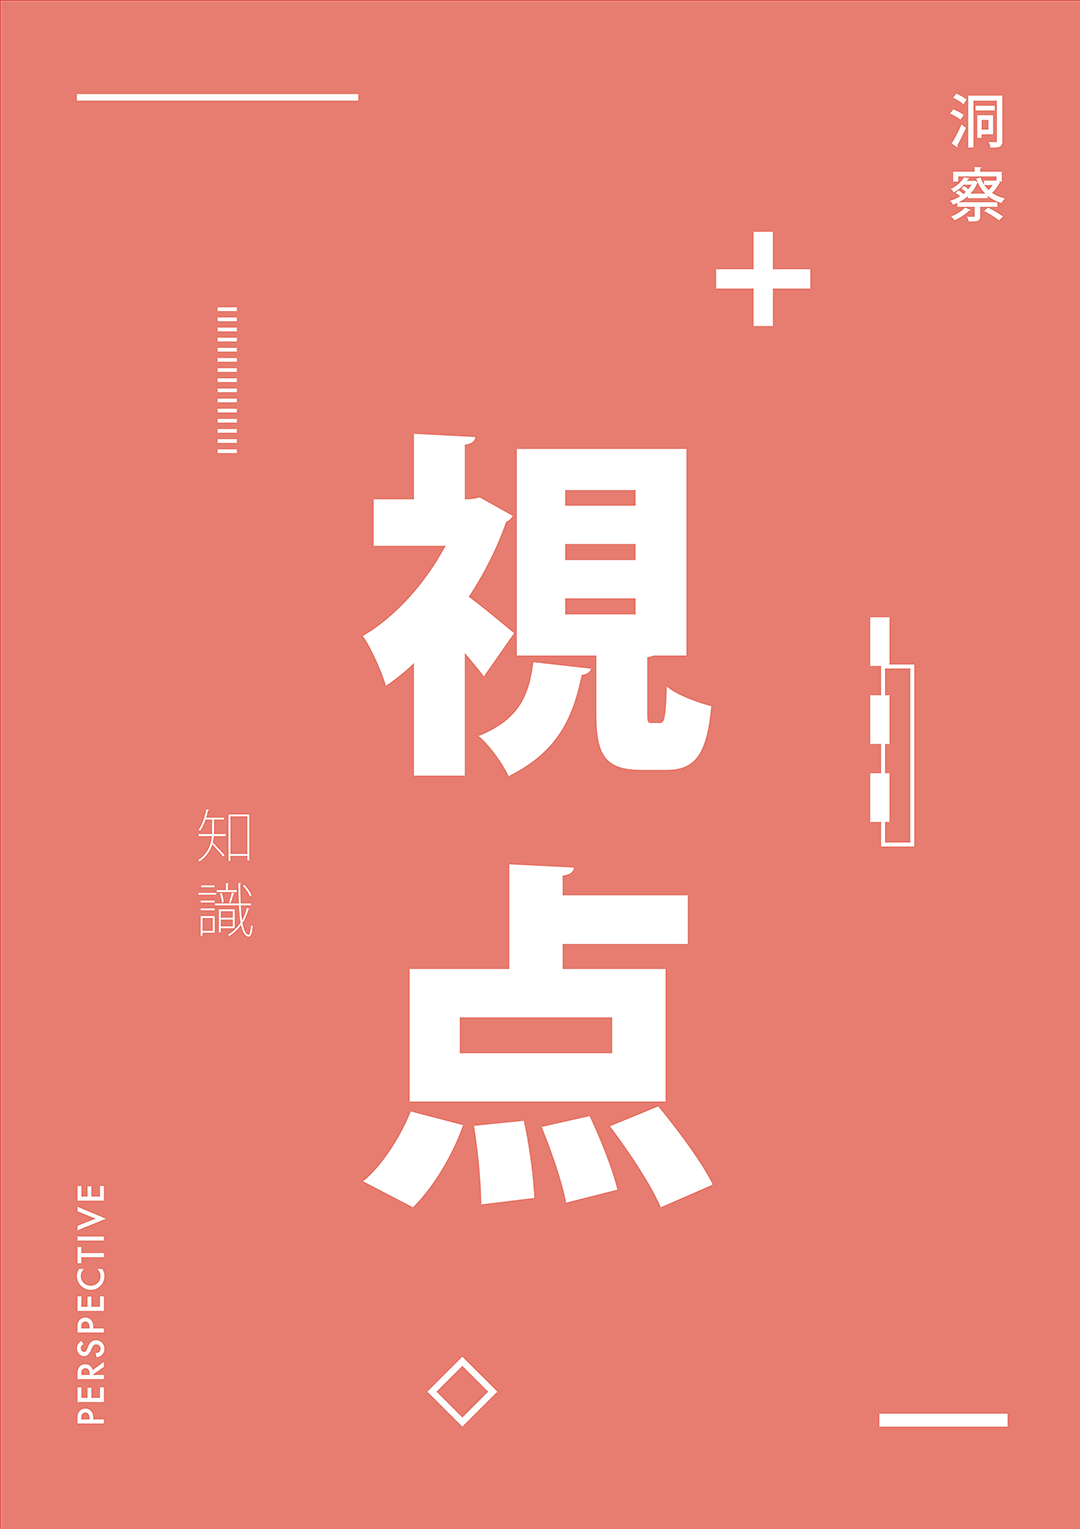 Shikata ga nai aesthetic by dale japan design biteki shikata ga nai aesthetic by dale japan design fandeluxe Image collections